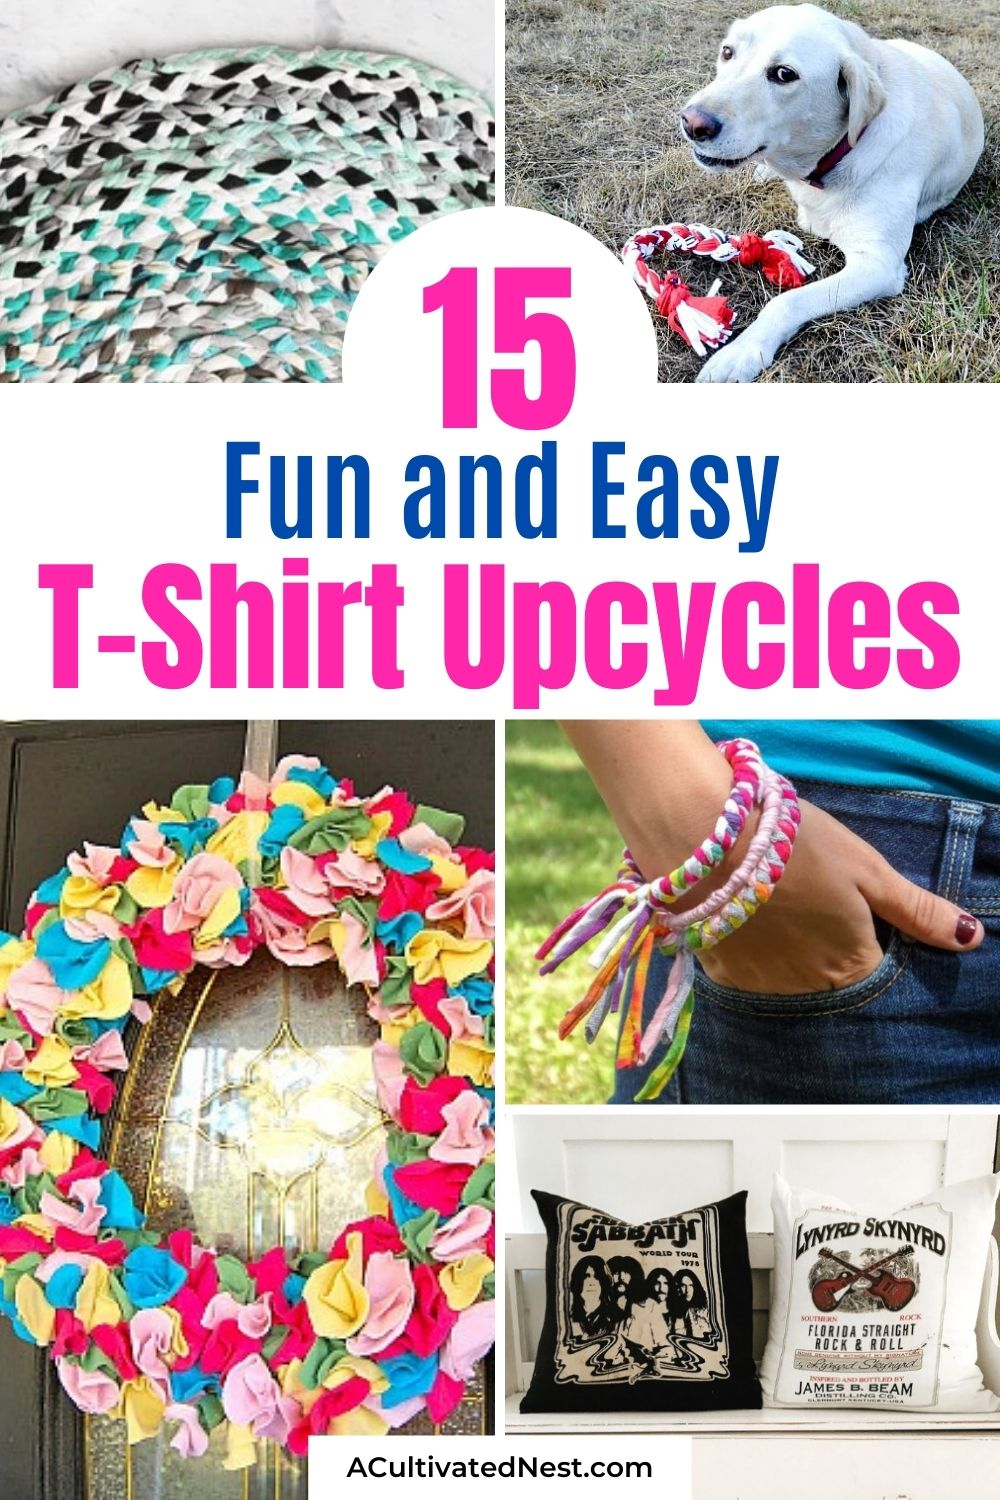 15 Ways to Repurpose or Restyle T-Shirts- Looking for ways to use old t-shirts that you've been holding on to but don't wear anymore? Here are 15 ways to repurpose T-shirts!   upcycling T-shirts, recycle T-shirts, old T-shirt restyles #upcycling #repurpose #restyleShirt #diyProject #ACultivatednest